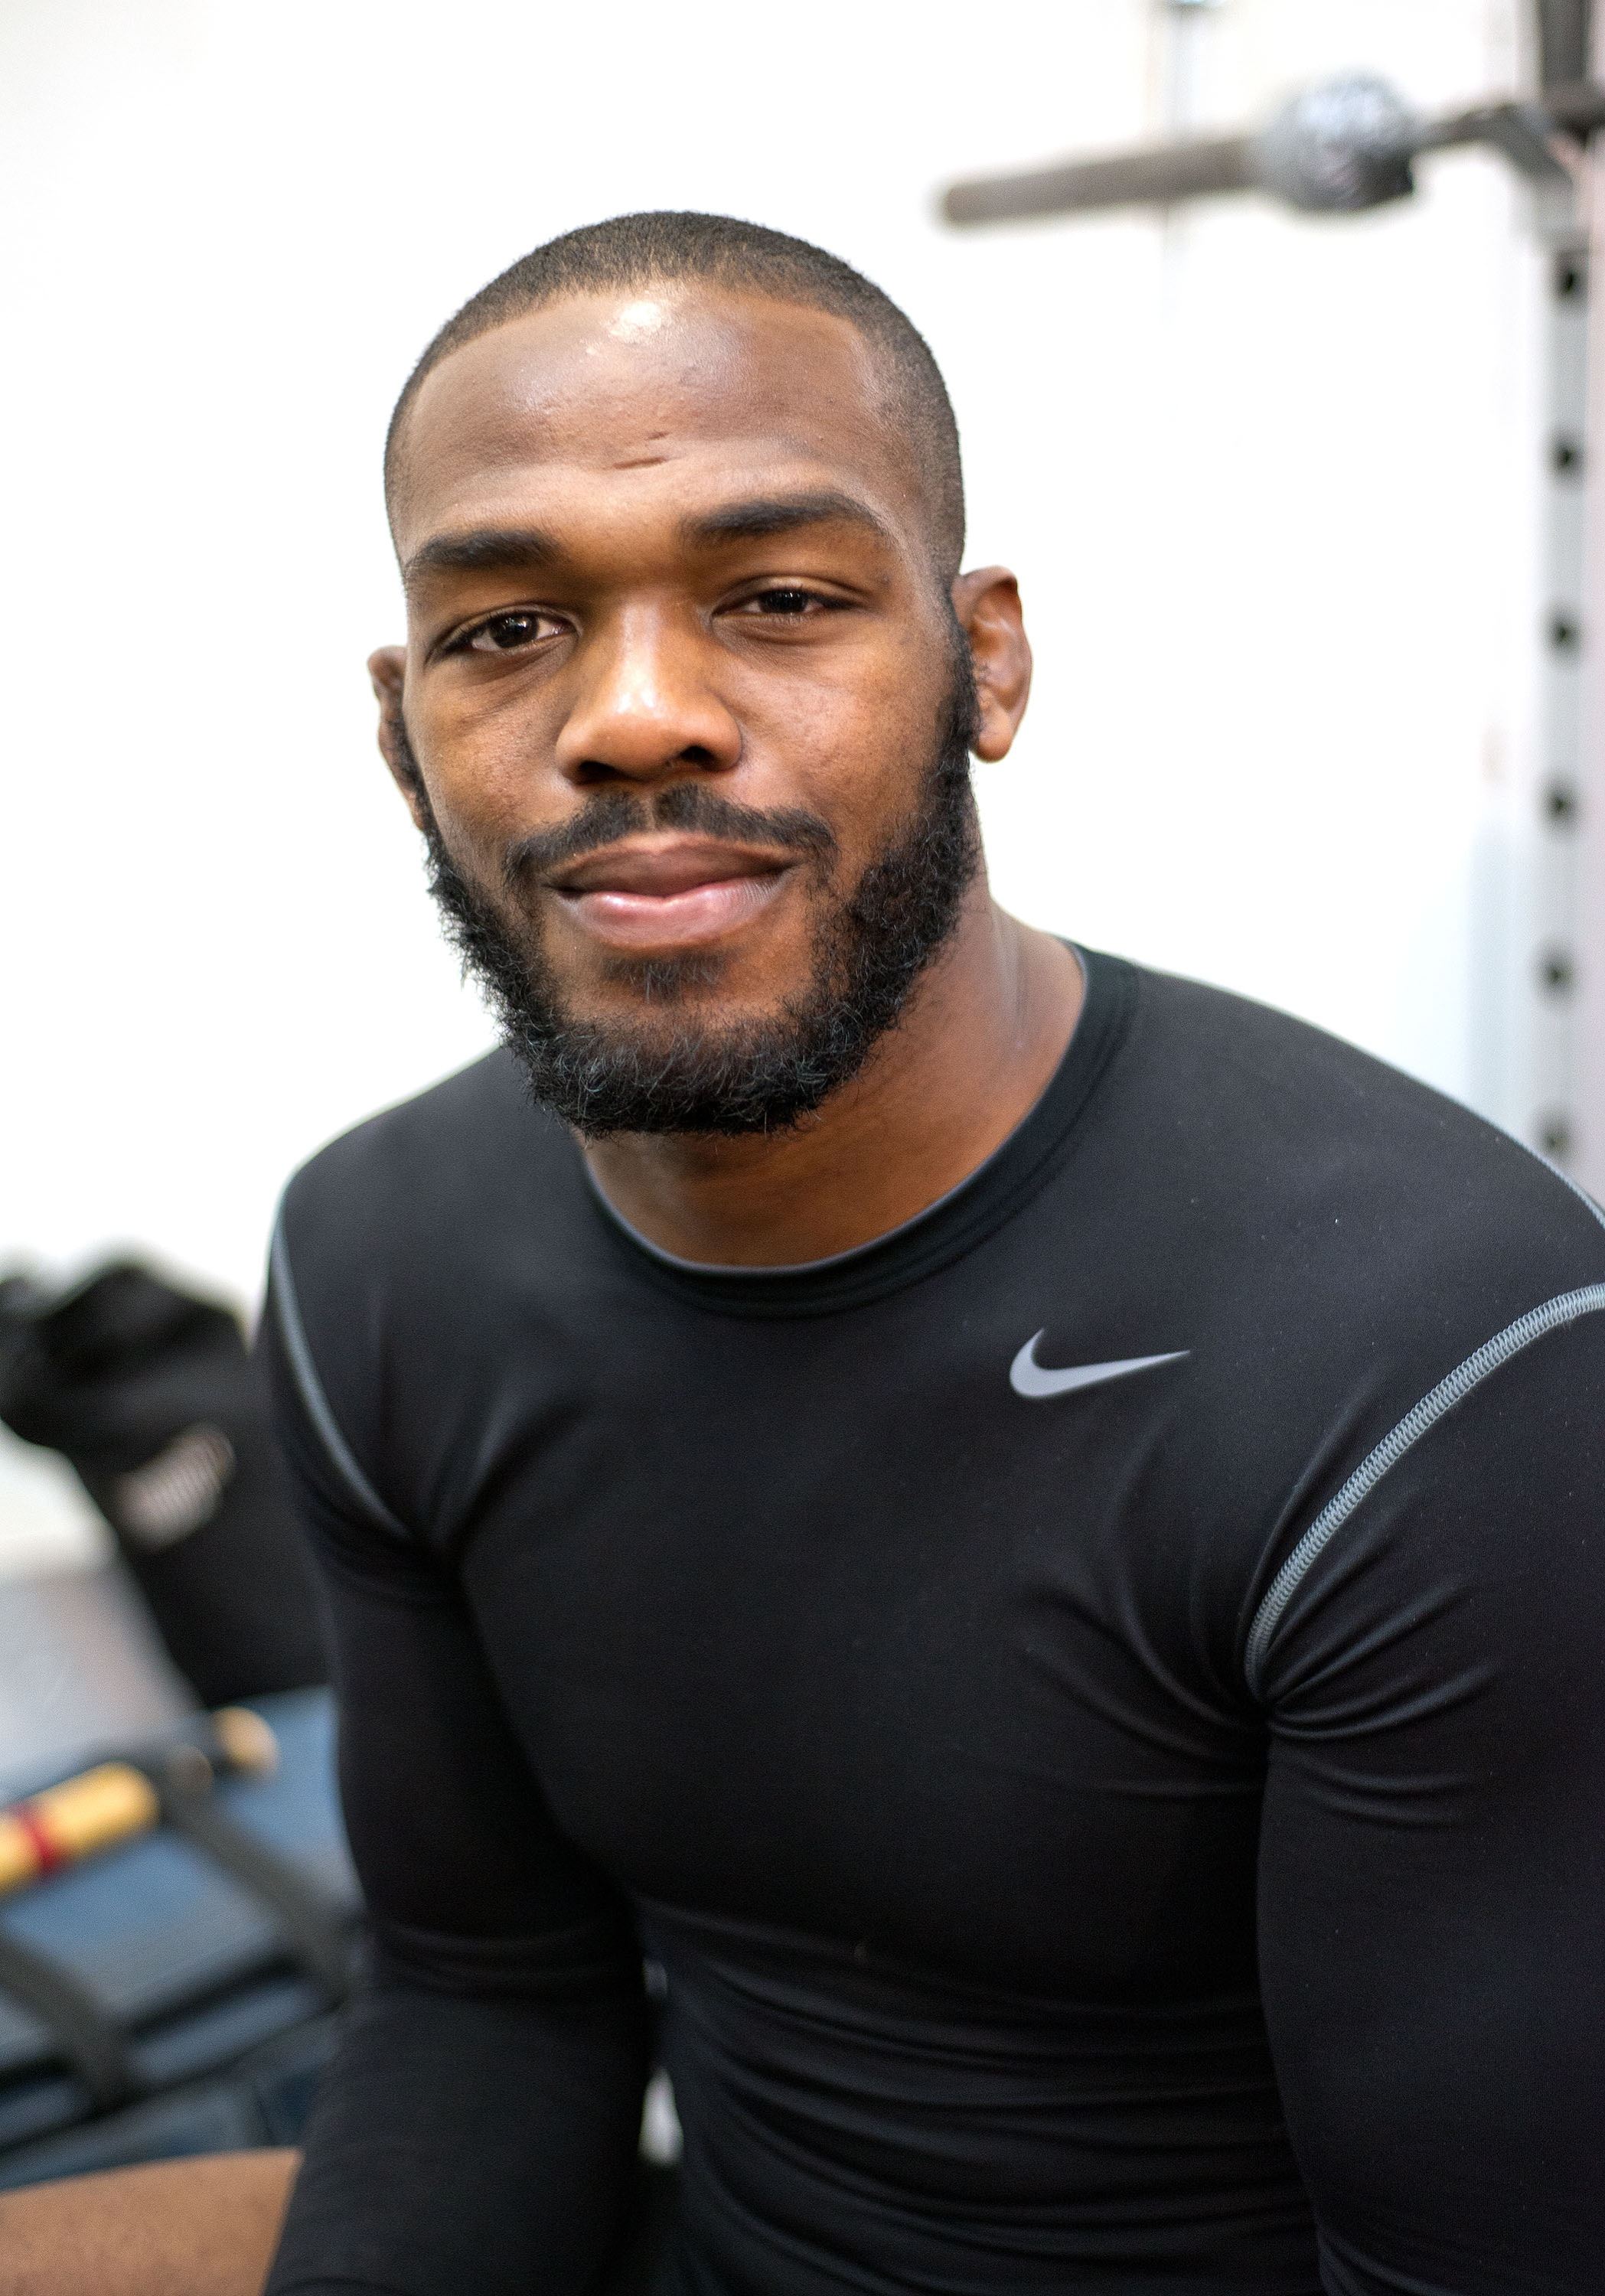 Jon Jones poses during a media event. (Getty)